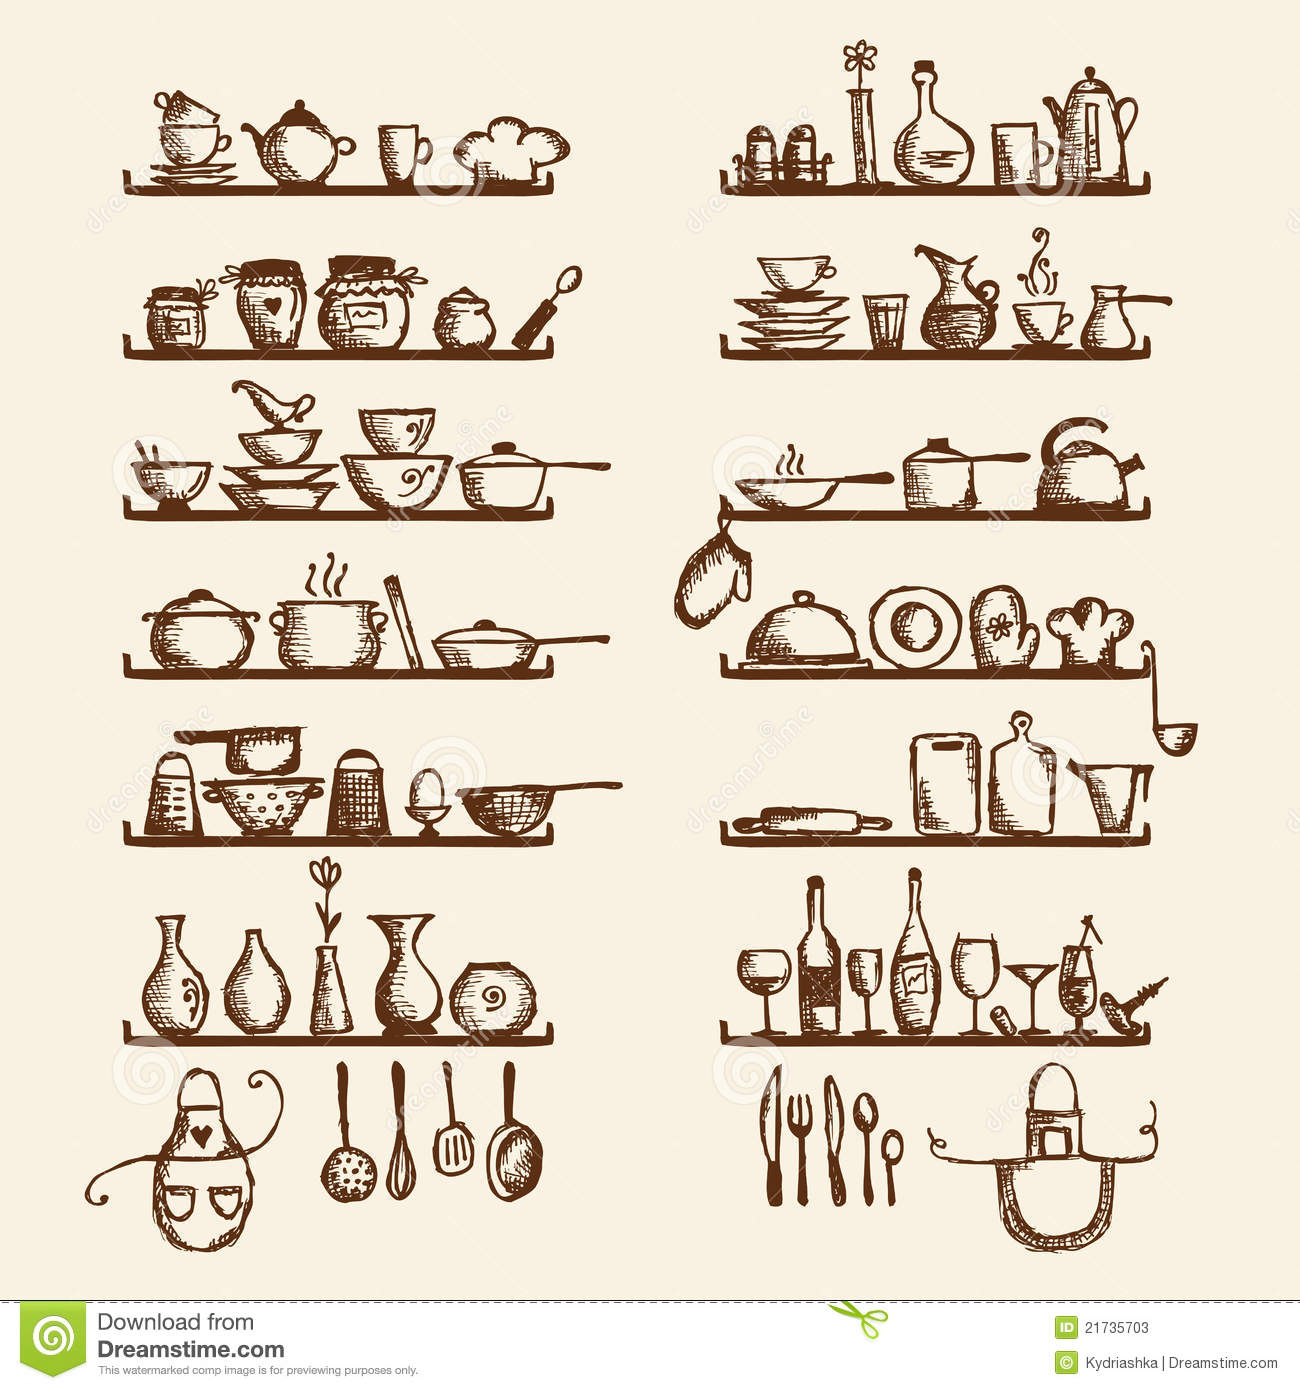 Utensils On Shelves Sketch Drawing Stock Photos Image: 21735703 #4C1E04 1300 1390